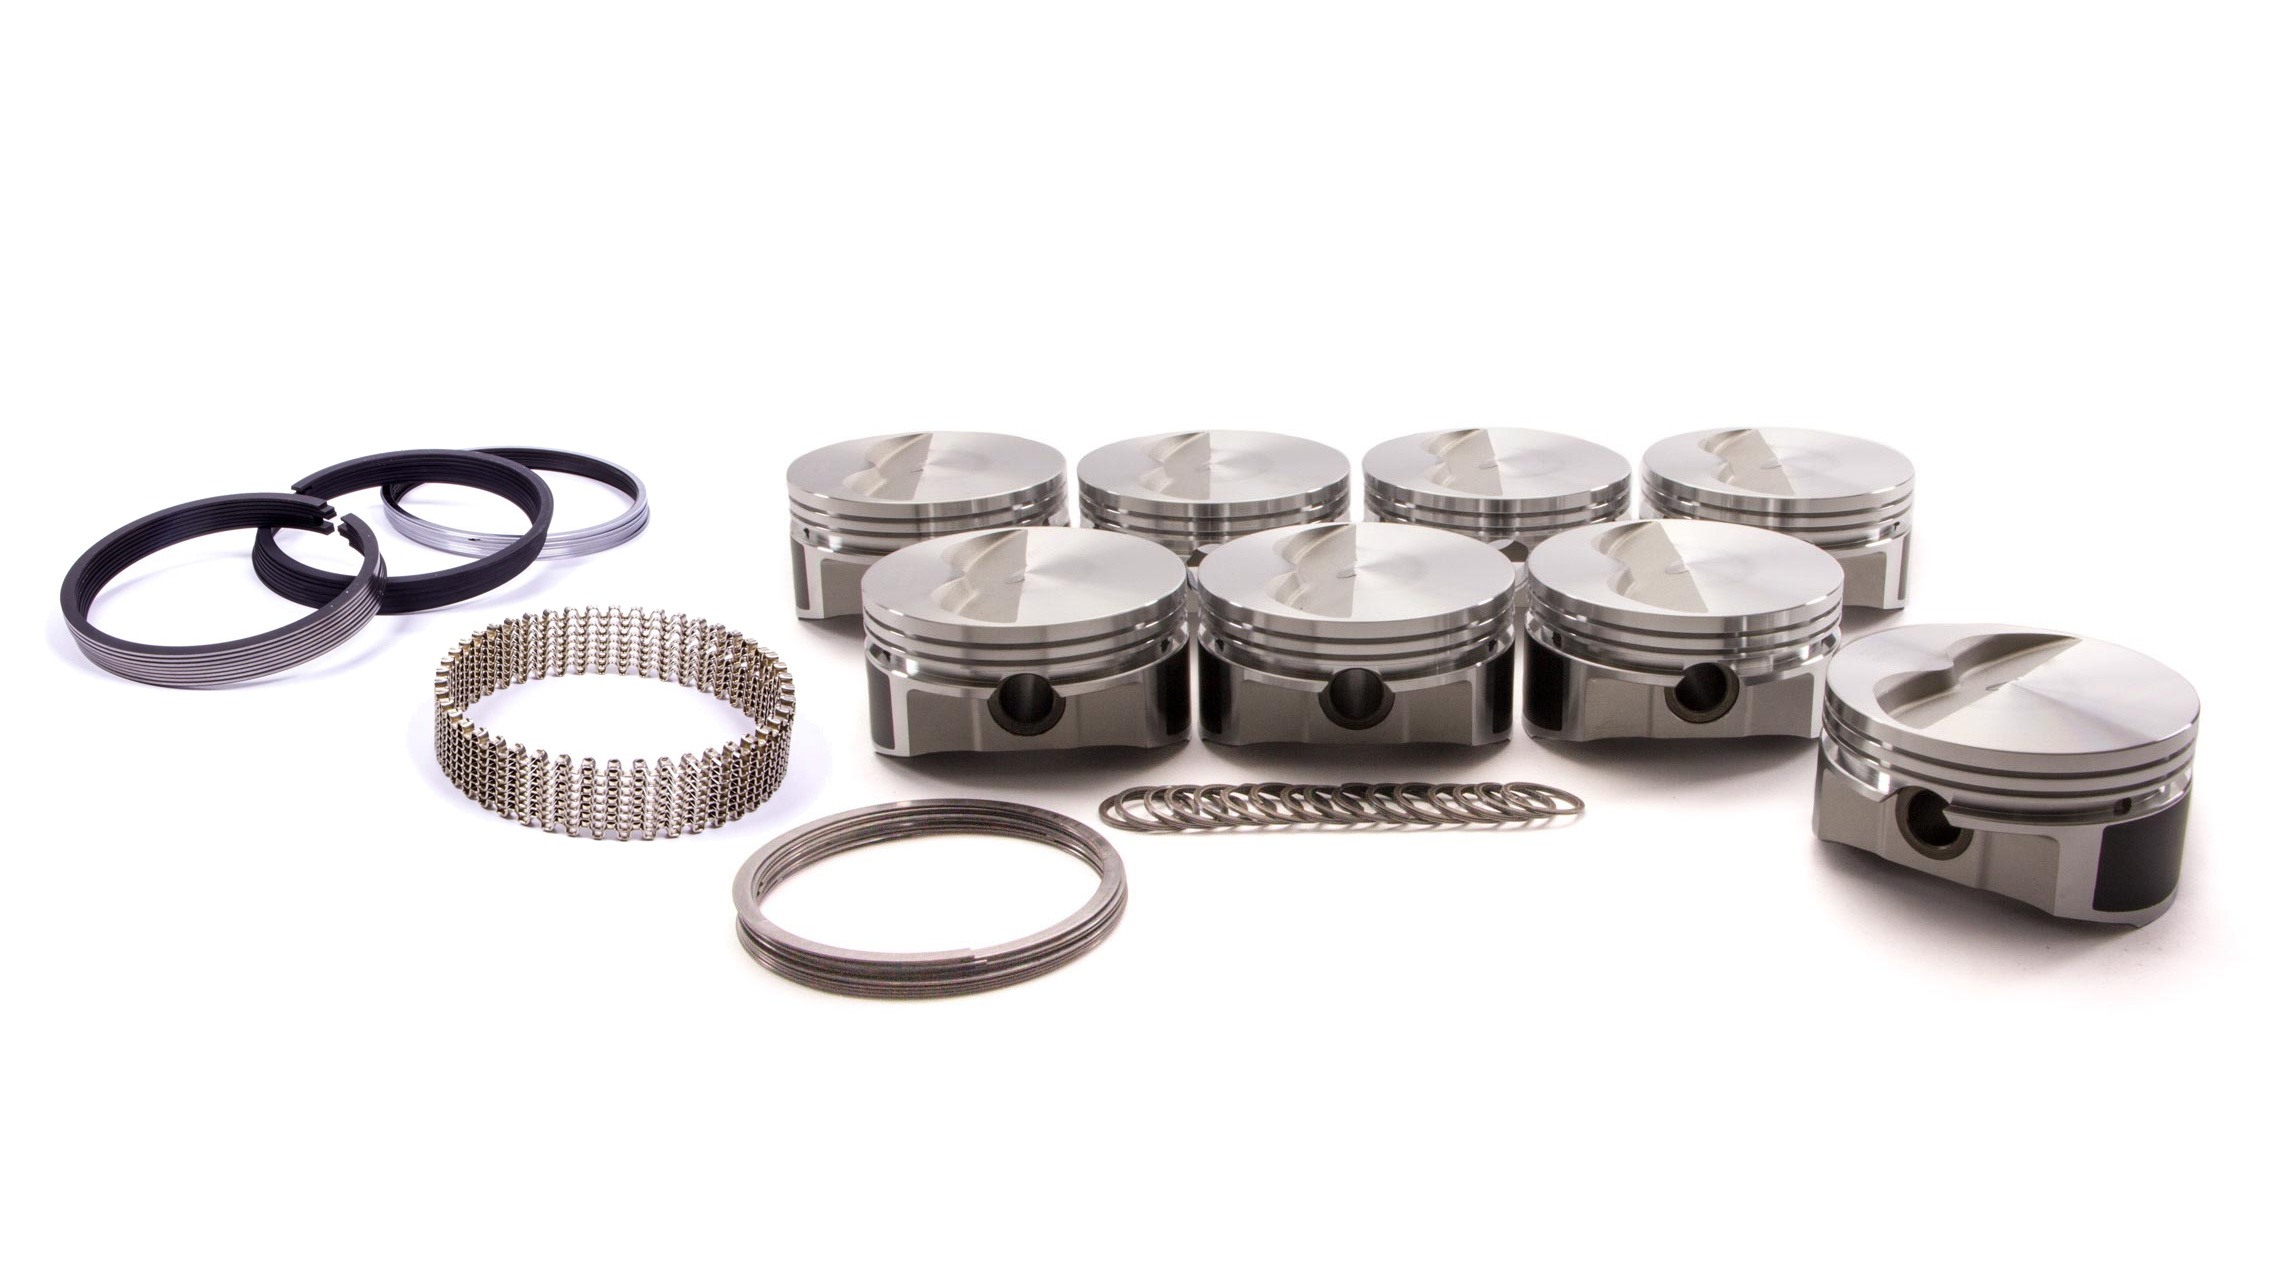 Wiseco Pro-Tru PTS506A3 Piston and Ring, 23 Degree Flat Top, Forged, 4.030 in Bore, 1/16 x 1/16 x 3/16 in Ring Grooves, Minus 5.0 cc, Small Block Chevy, Kit